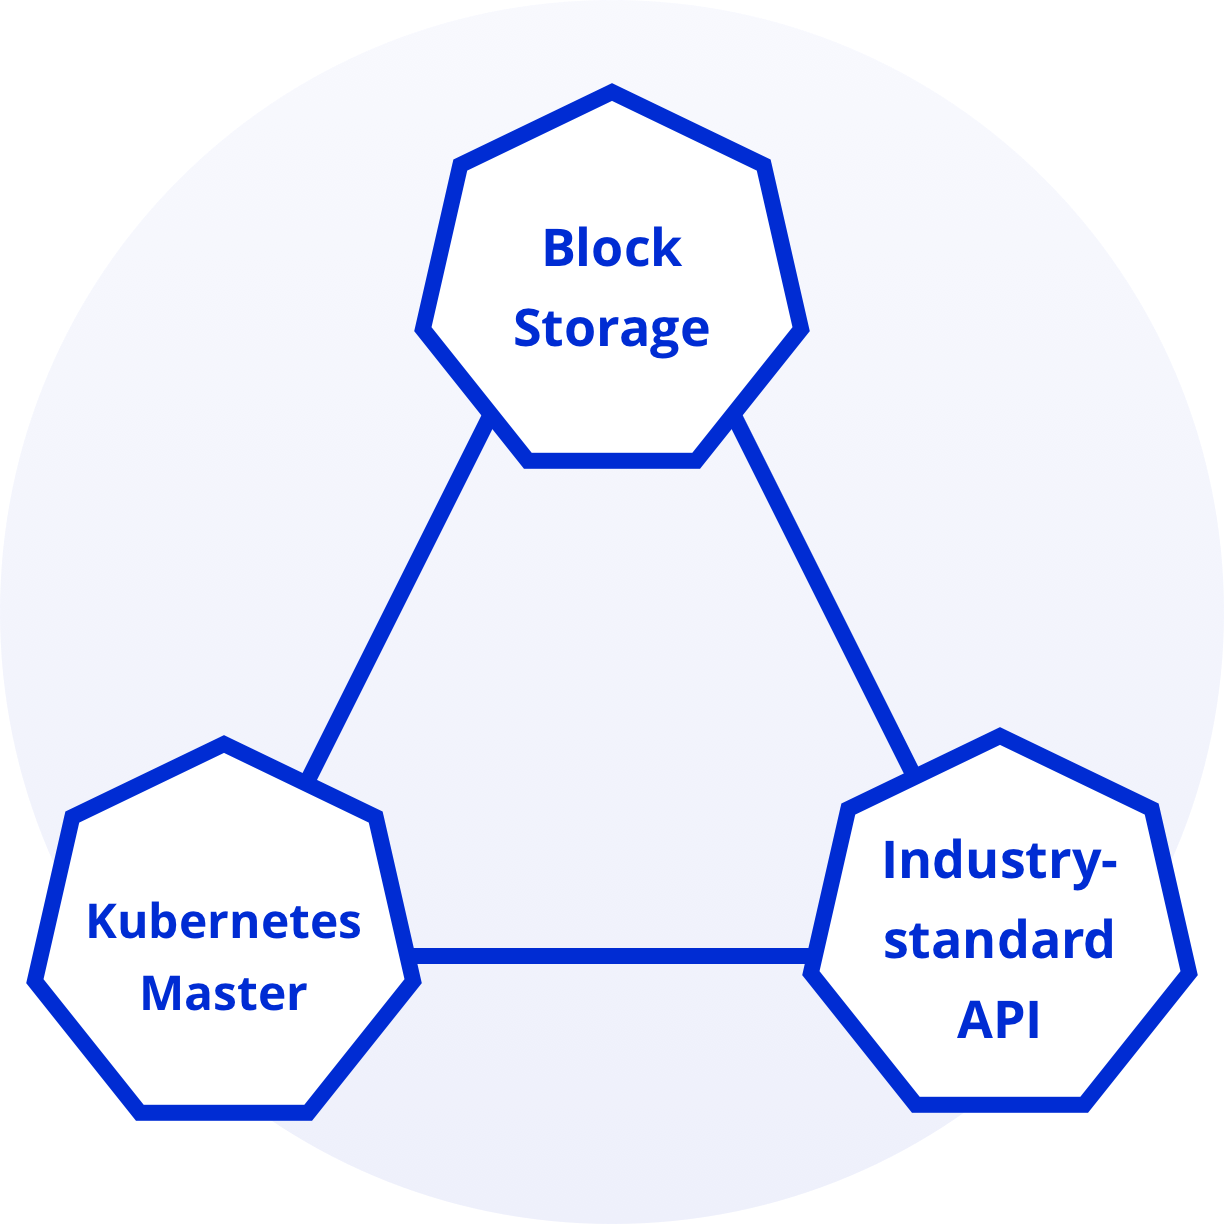 Kubernetes GPU Cloud comes with dedicated support and a fully-managed service making K8 simple, cost-effective easy to manage